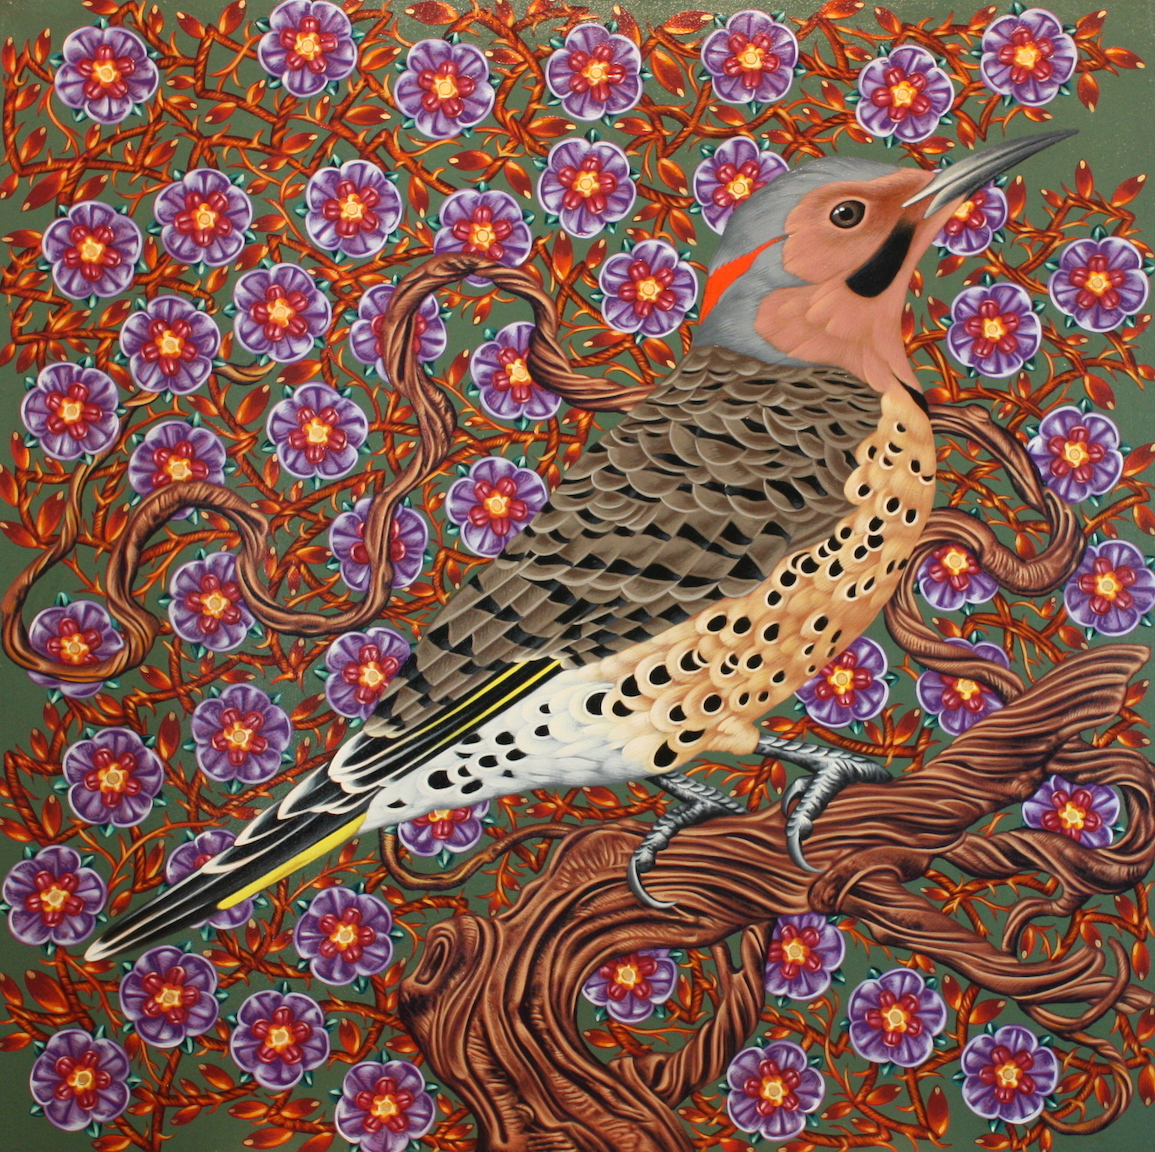 Exult 22 Northern Flicker  30 x 30 Acrylic on panel